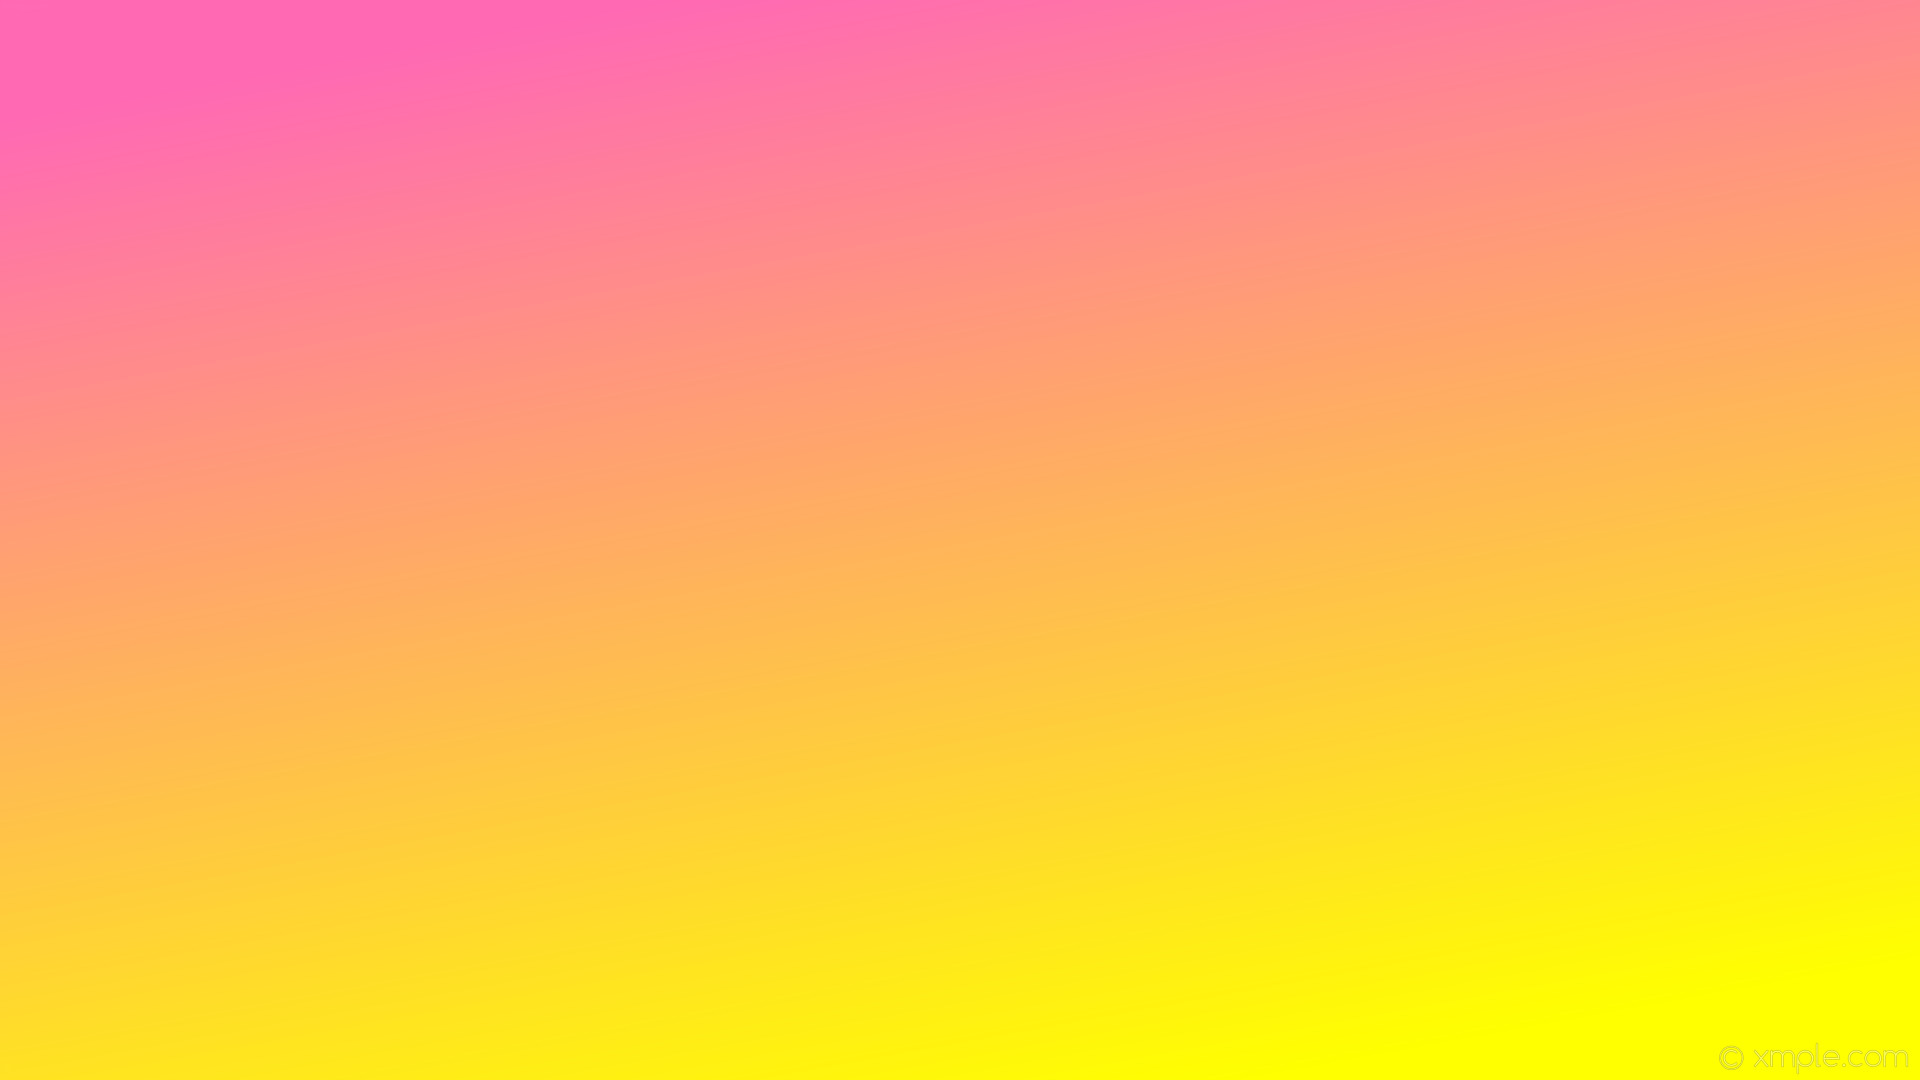 Pink And Yellow Remar